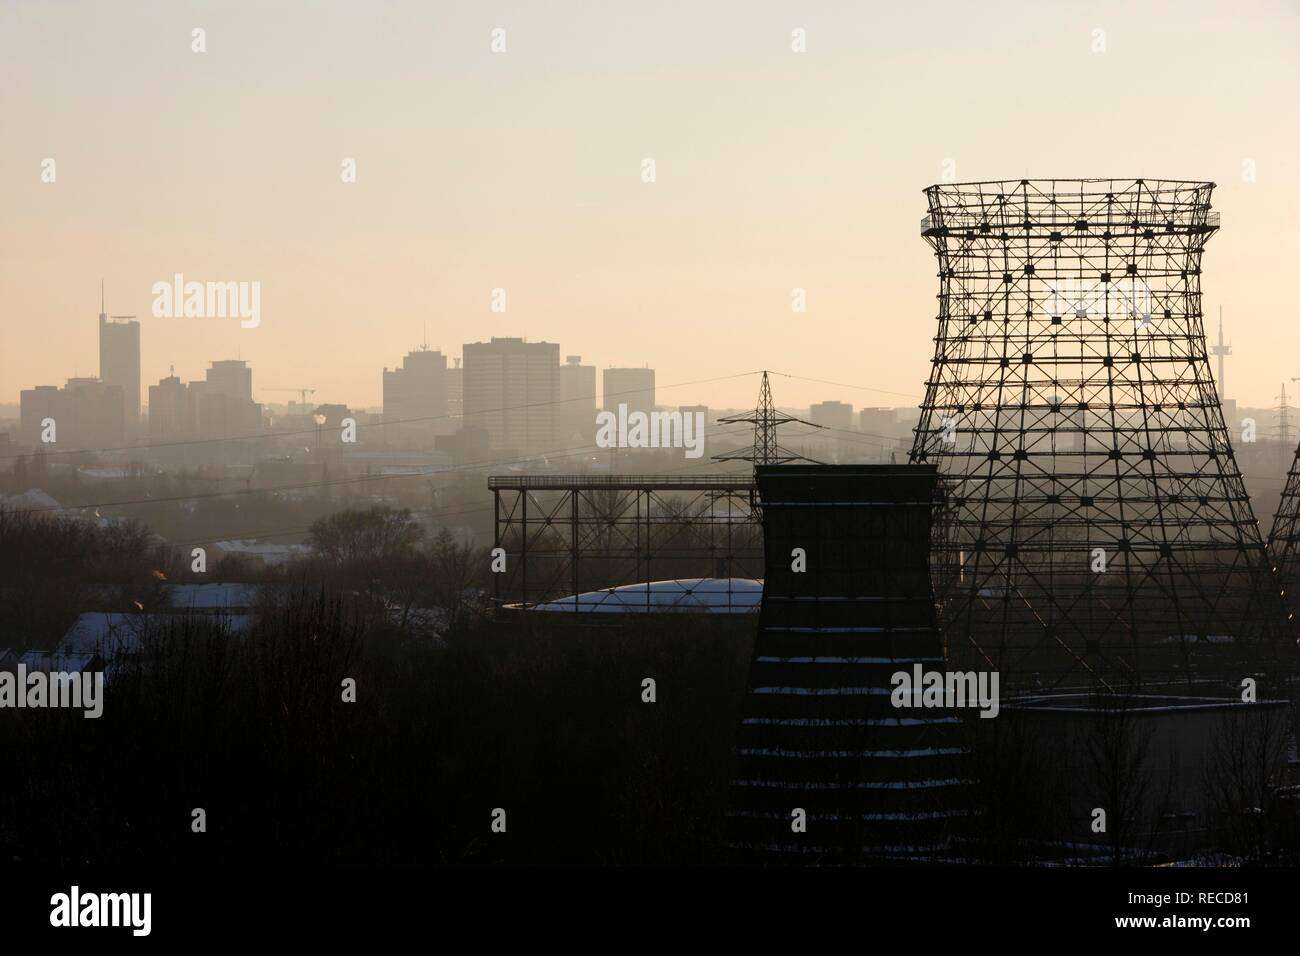 City center skyline view from Zeche Zollverein, Essen, North Rhine-Westphalia - Stock Image